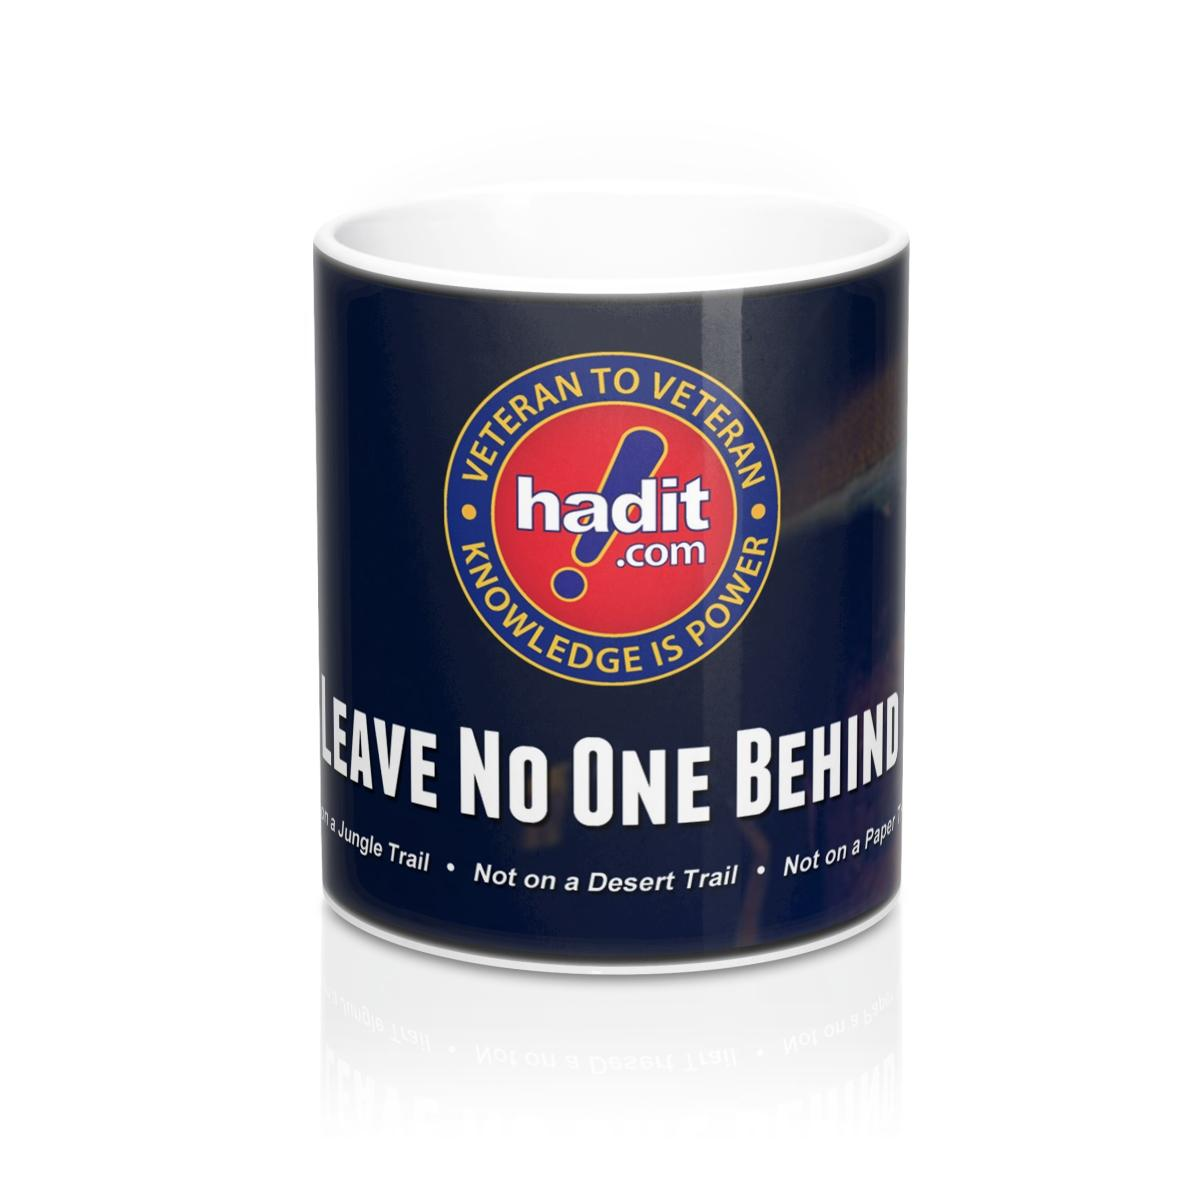 HadIt.com Branded 11oz Coffee Mug for sale